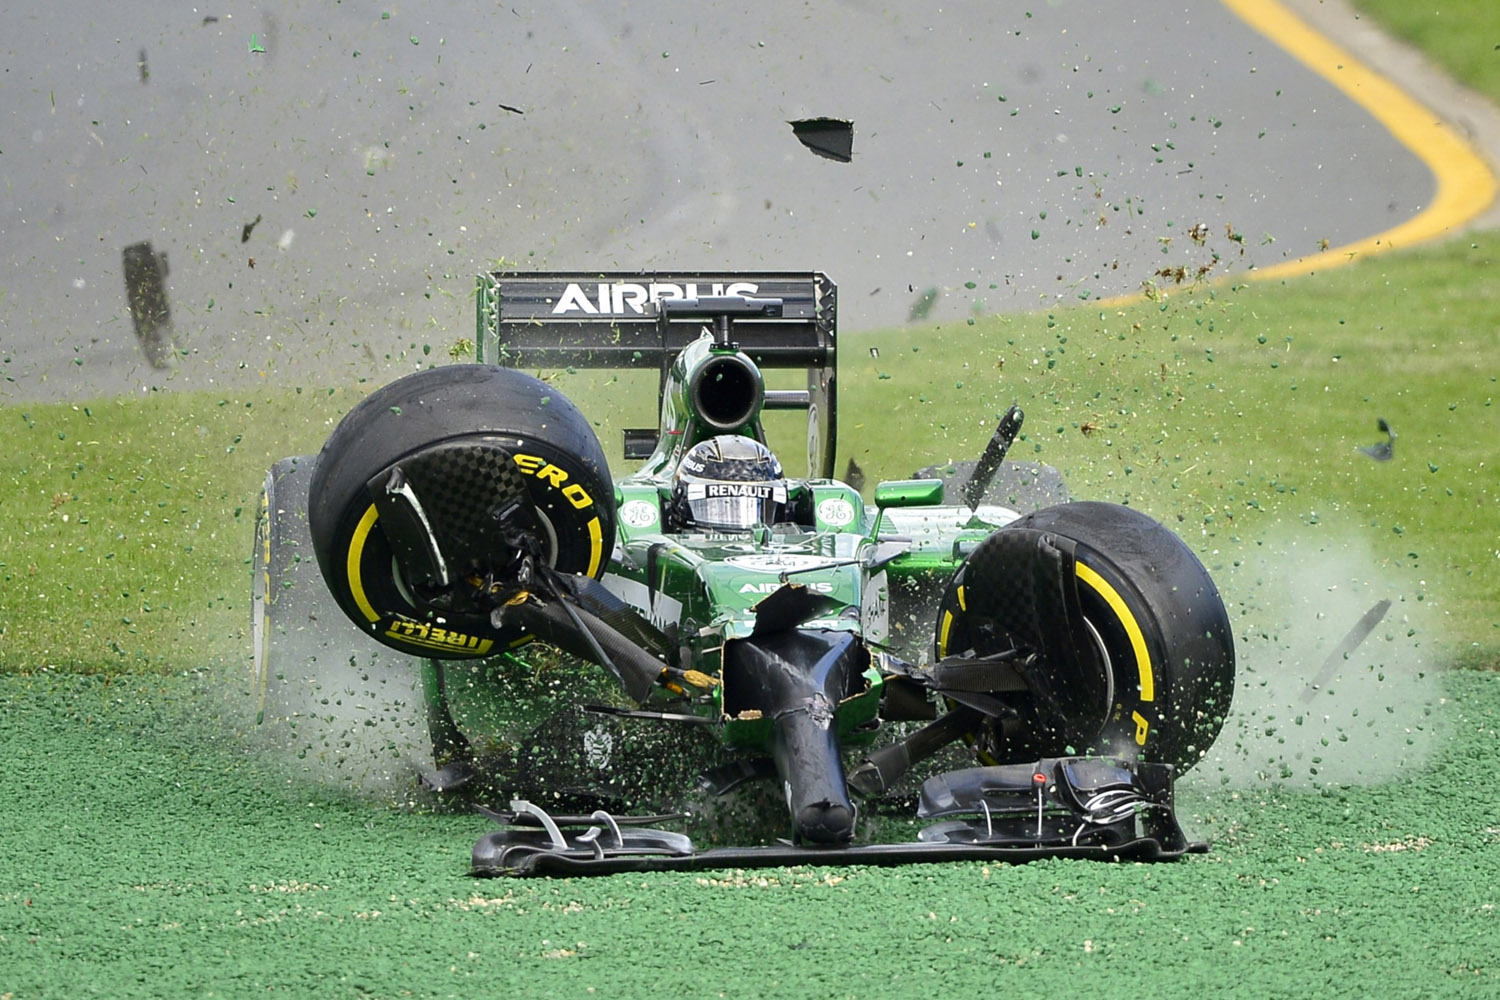 Mar. 16, 2014. Caterham driver Kamui Kobayashi of Japan runs off the track after he crashed with Williams driver Felipe Massa of Brazil on the first lap of the Australian Formula One Grand Prix at Albert Park in Melbourne, Australia.